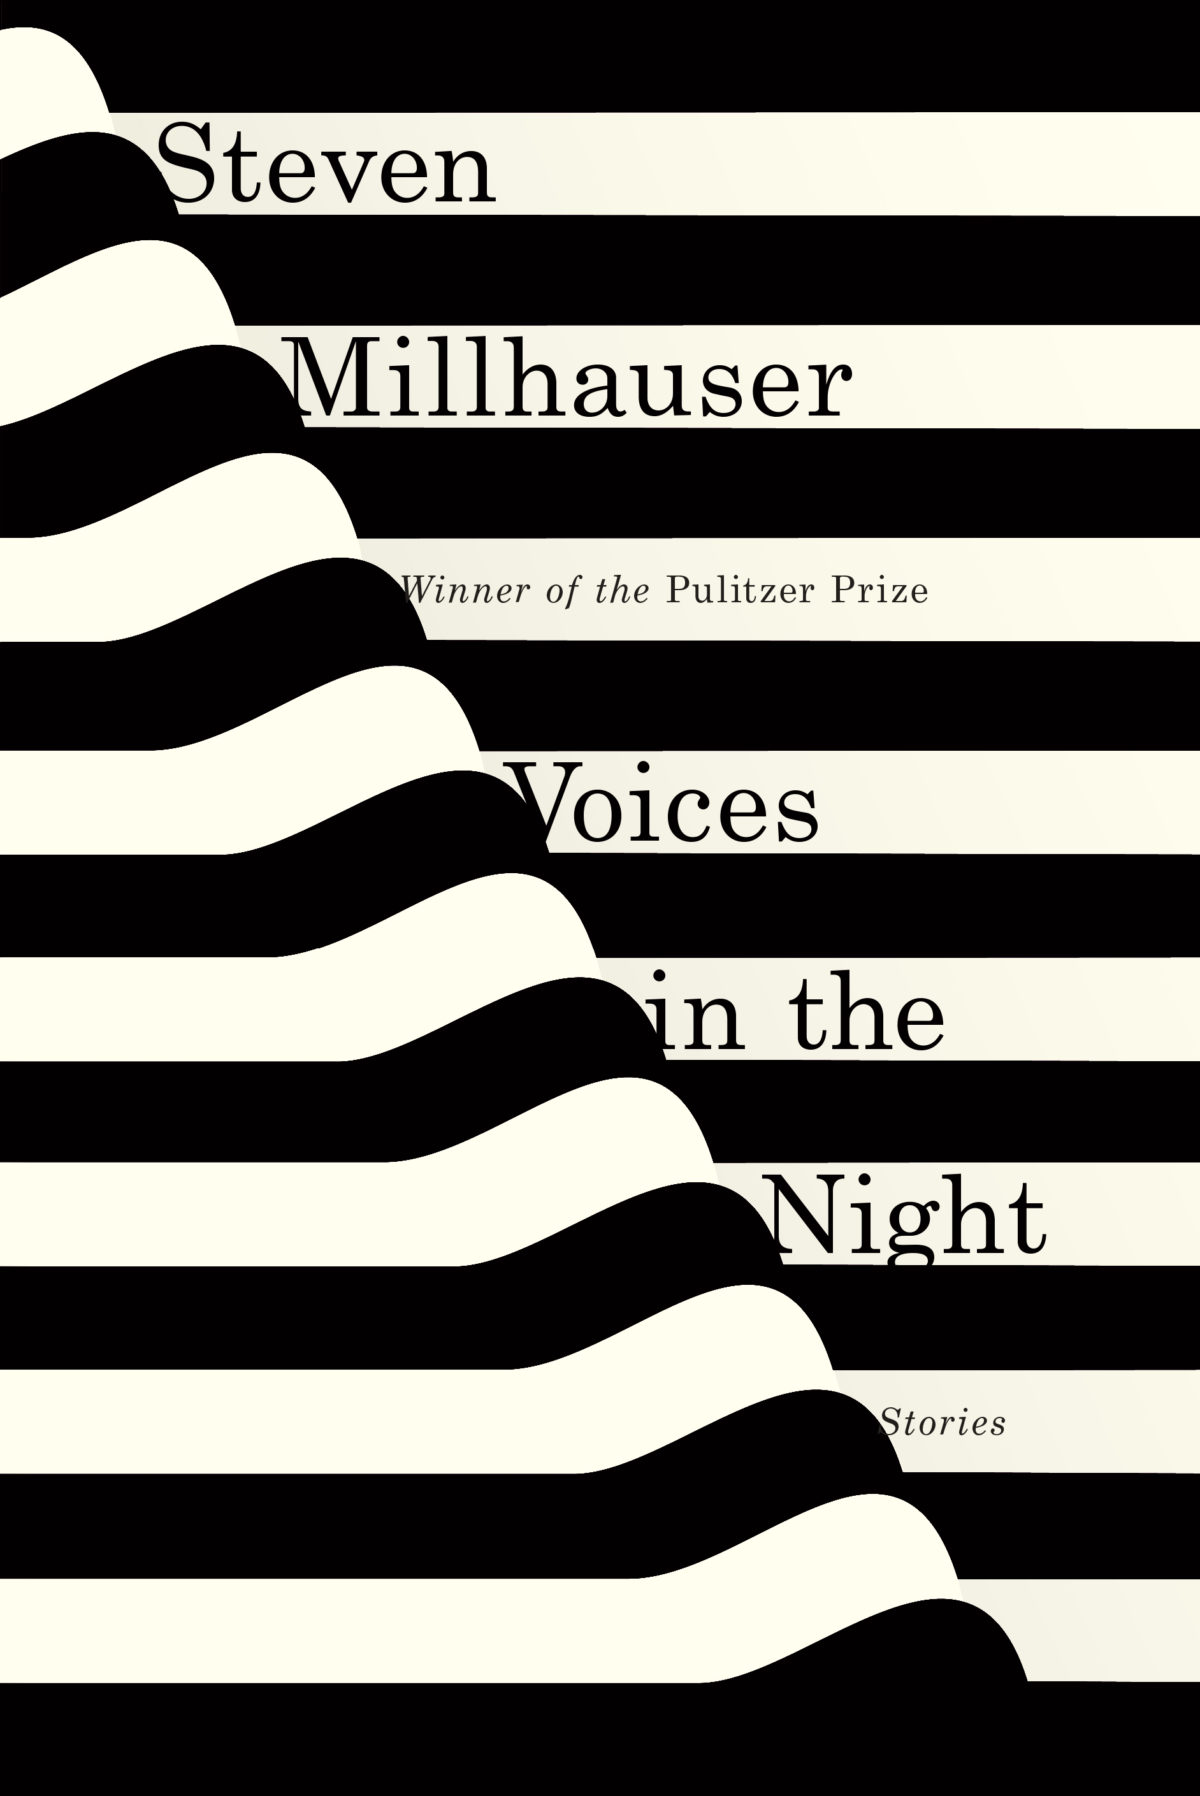 Penguin Book Cover Competition Previous Winners : Books covers winners the casual optimist